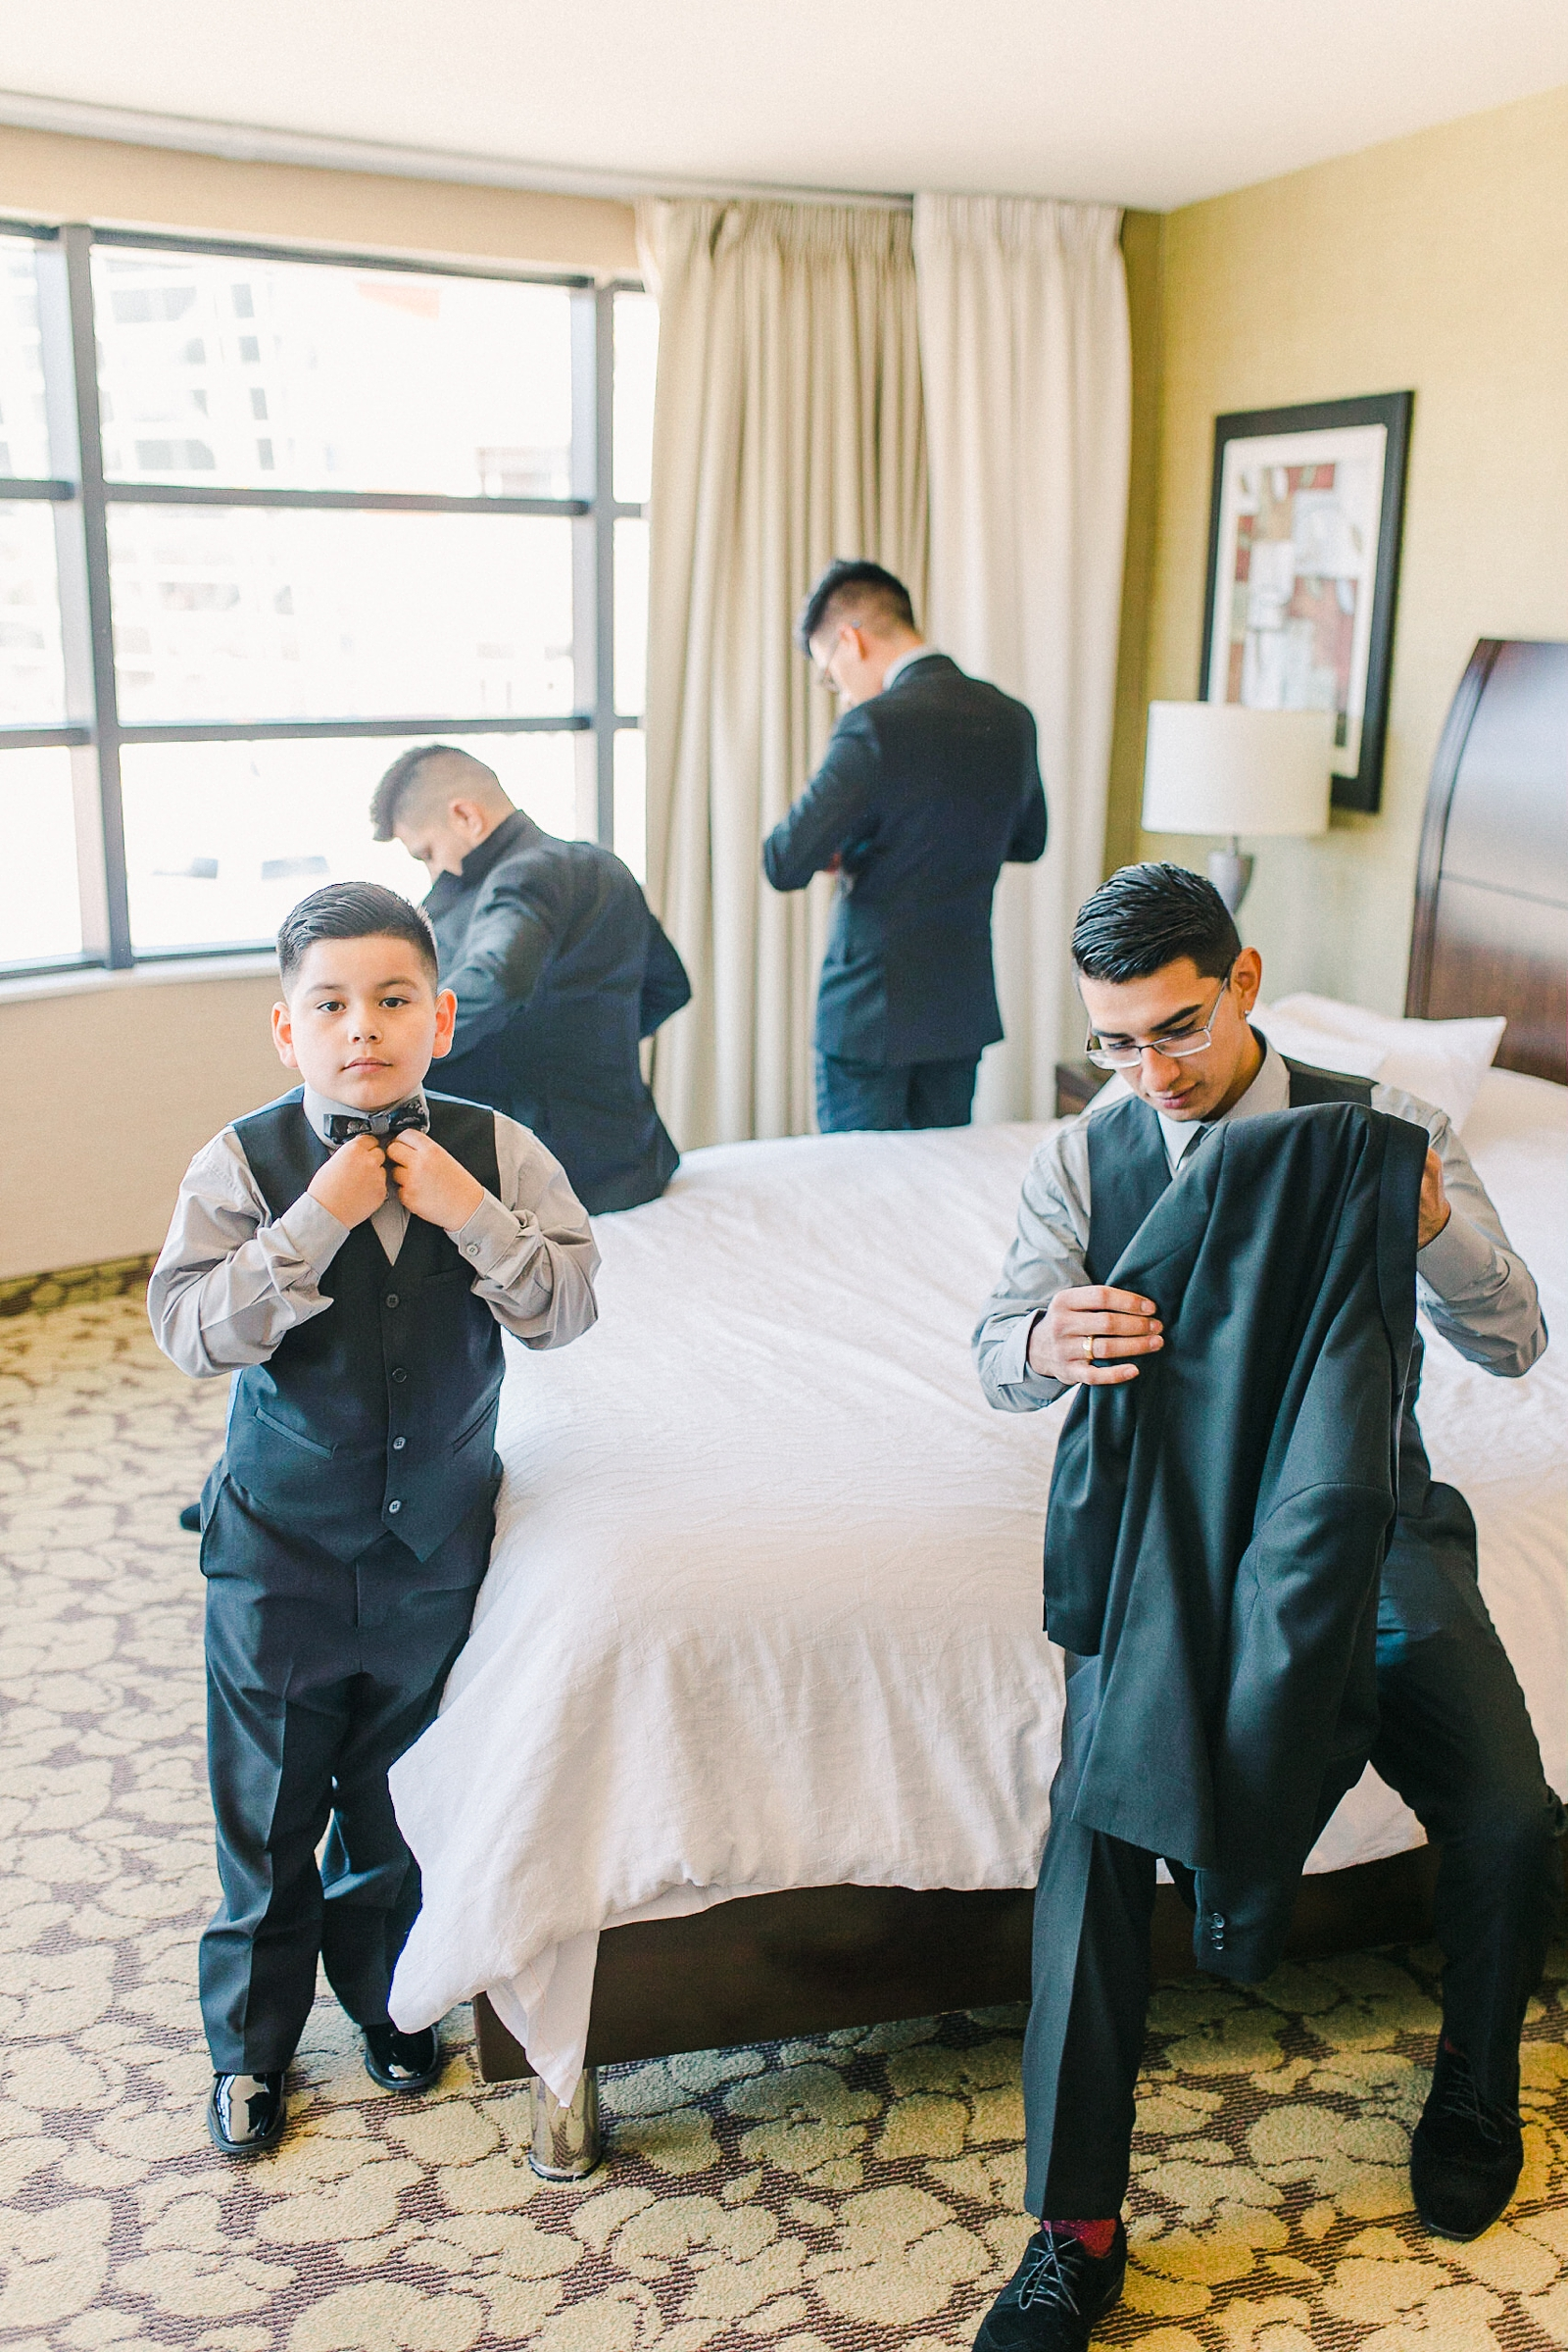 Cache Valley Logan Traditional Catholic Wedding Ceremony in a cathedral, Utah wedding photography, groom and groomsmen getting ready hotel photos